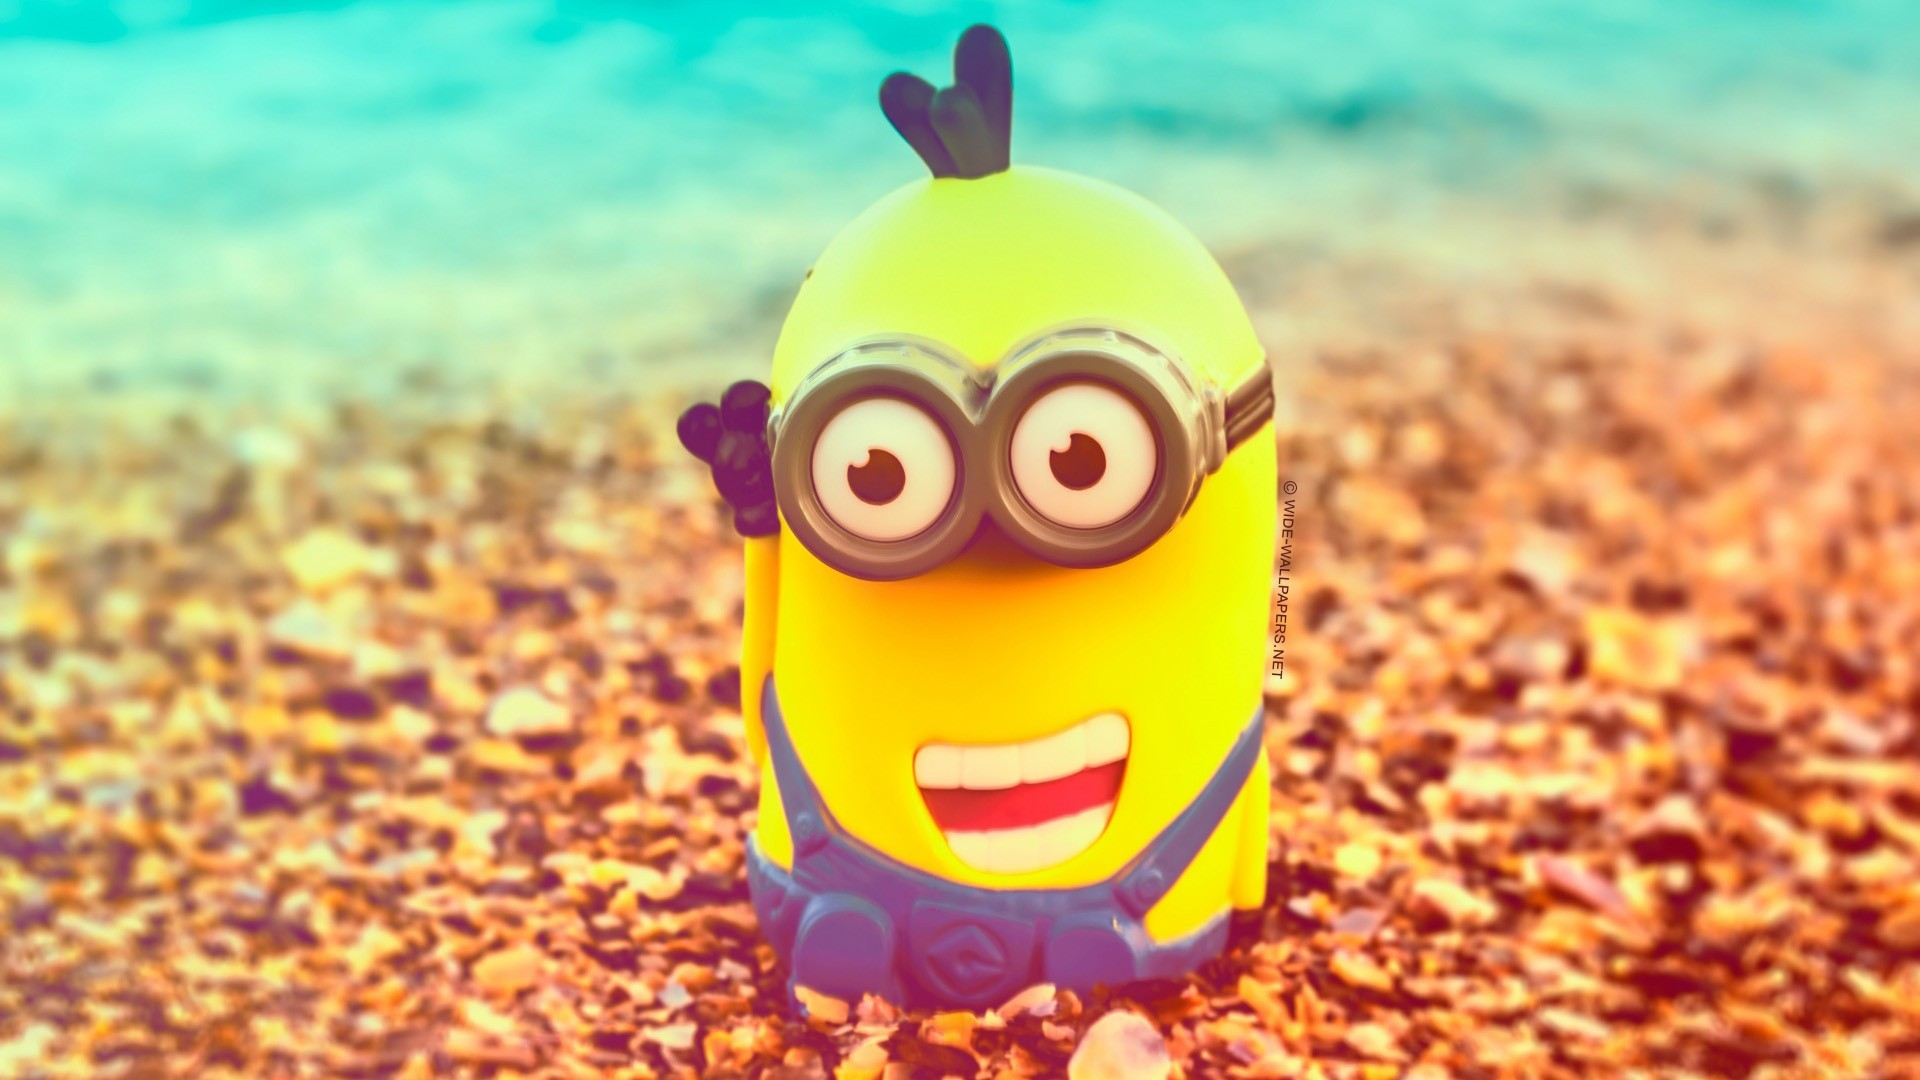 1920x1080 Get free high quality HD wallpapers ipad air wallpaper minion